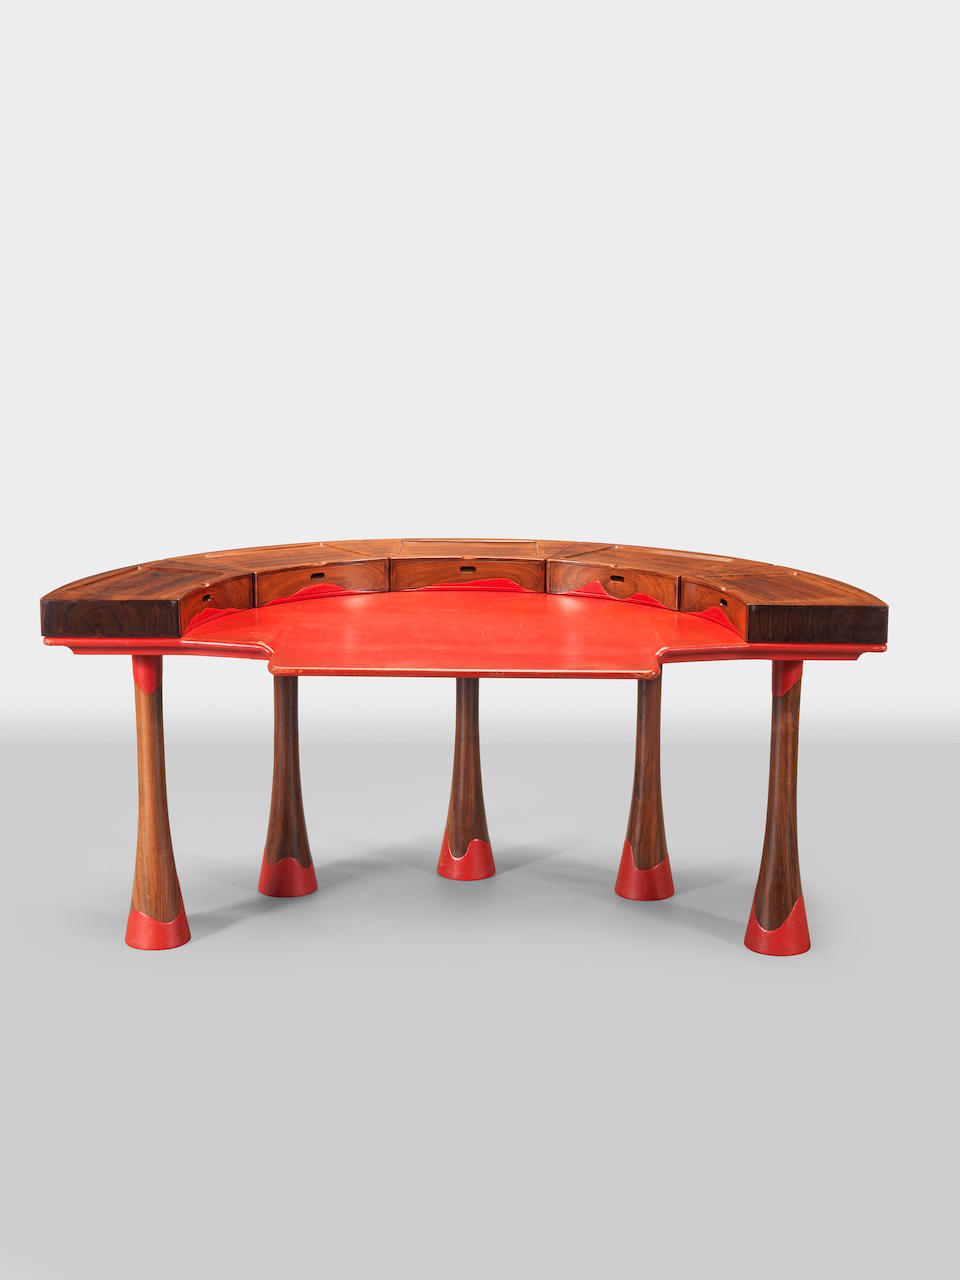 John Makepeace (British b.1939), A Carlton house desk and chair, designed and executed 1979 Indian rosewood and red leather